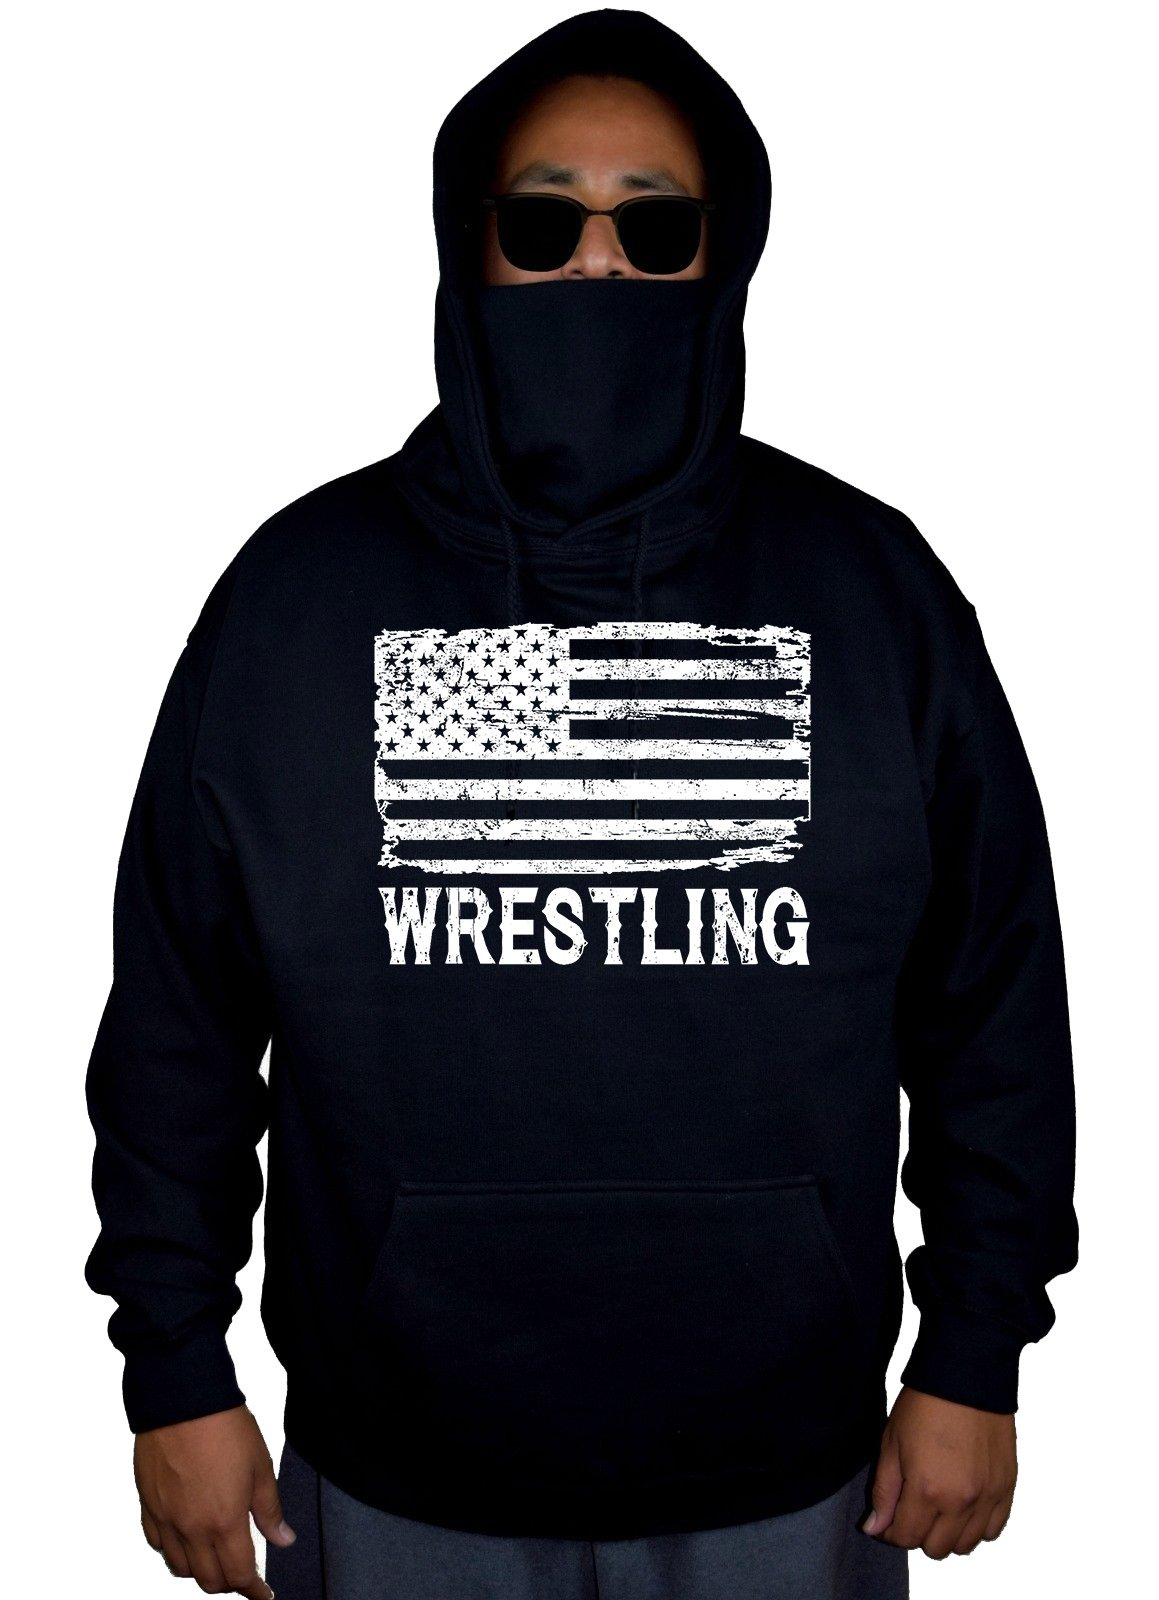 Men's Wrestling American Flag Black Mask Hoodie Sweater 5X-Large by Interstate Apparel